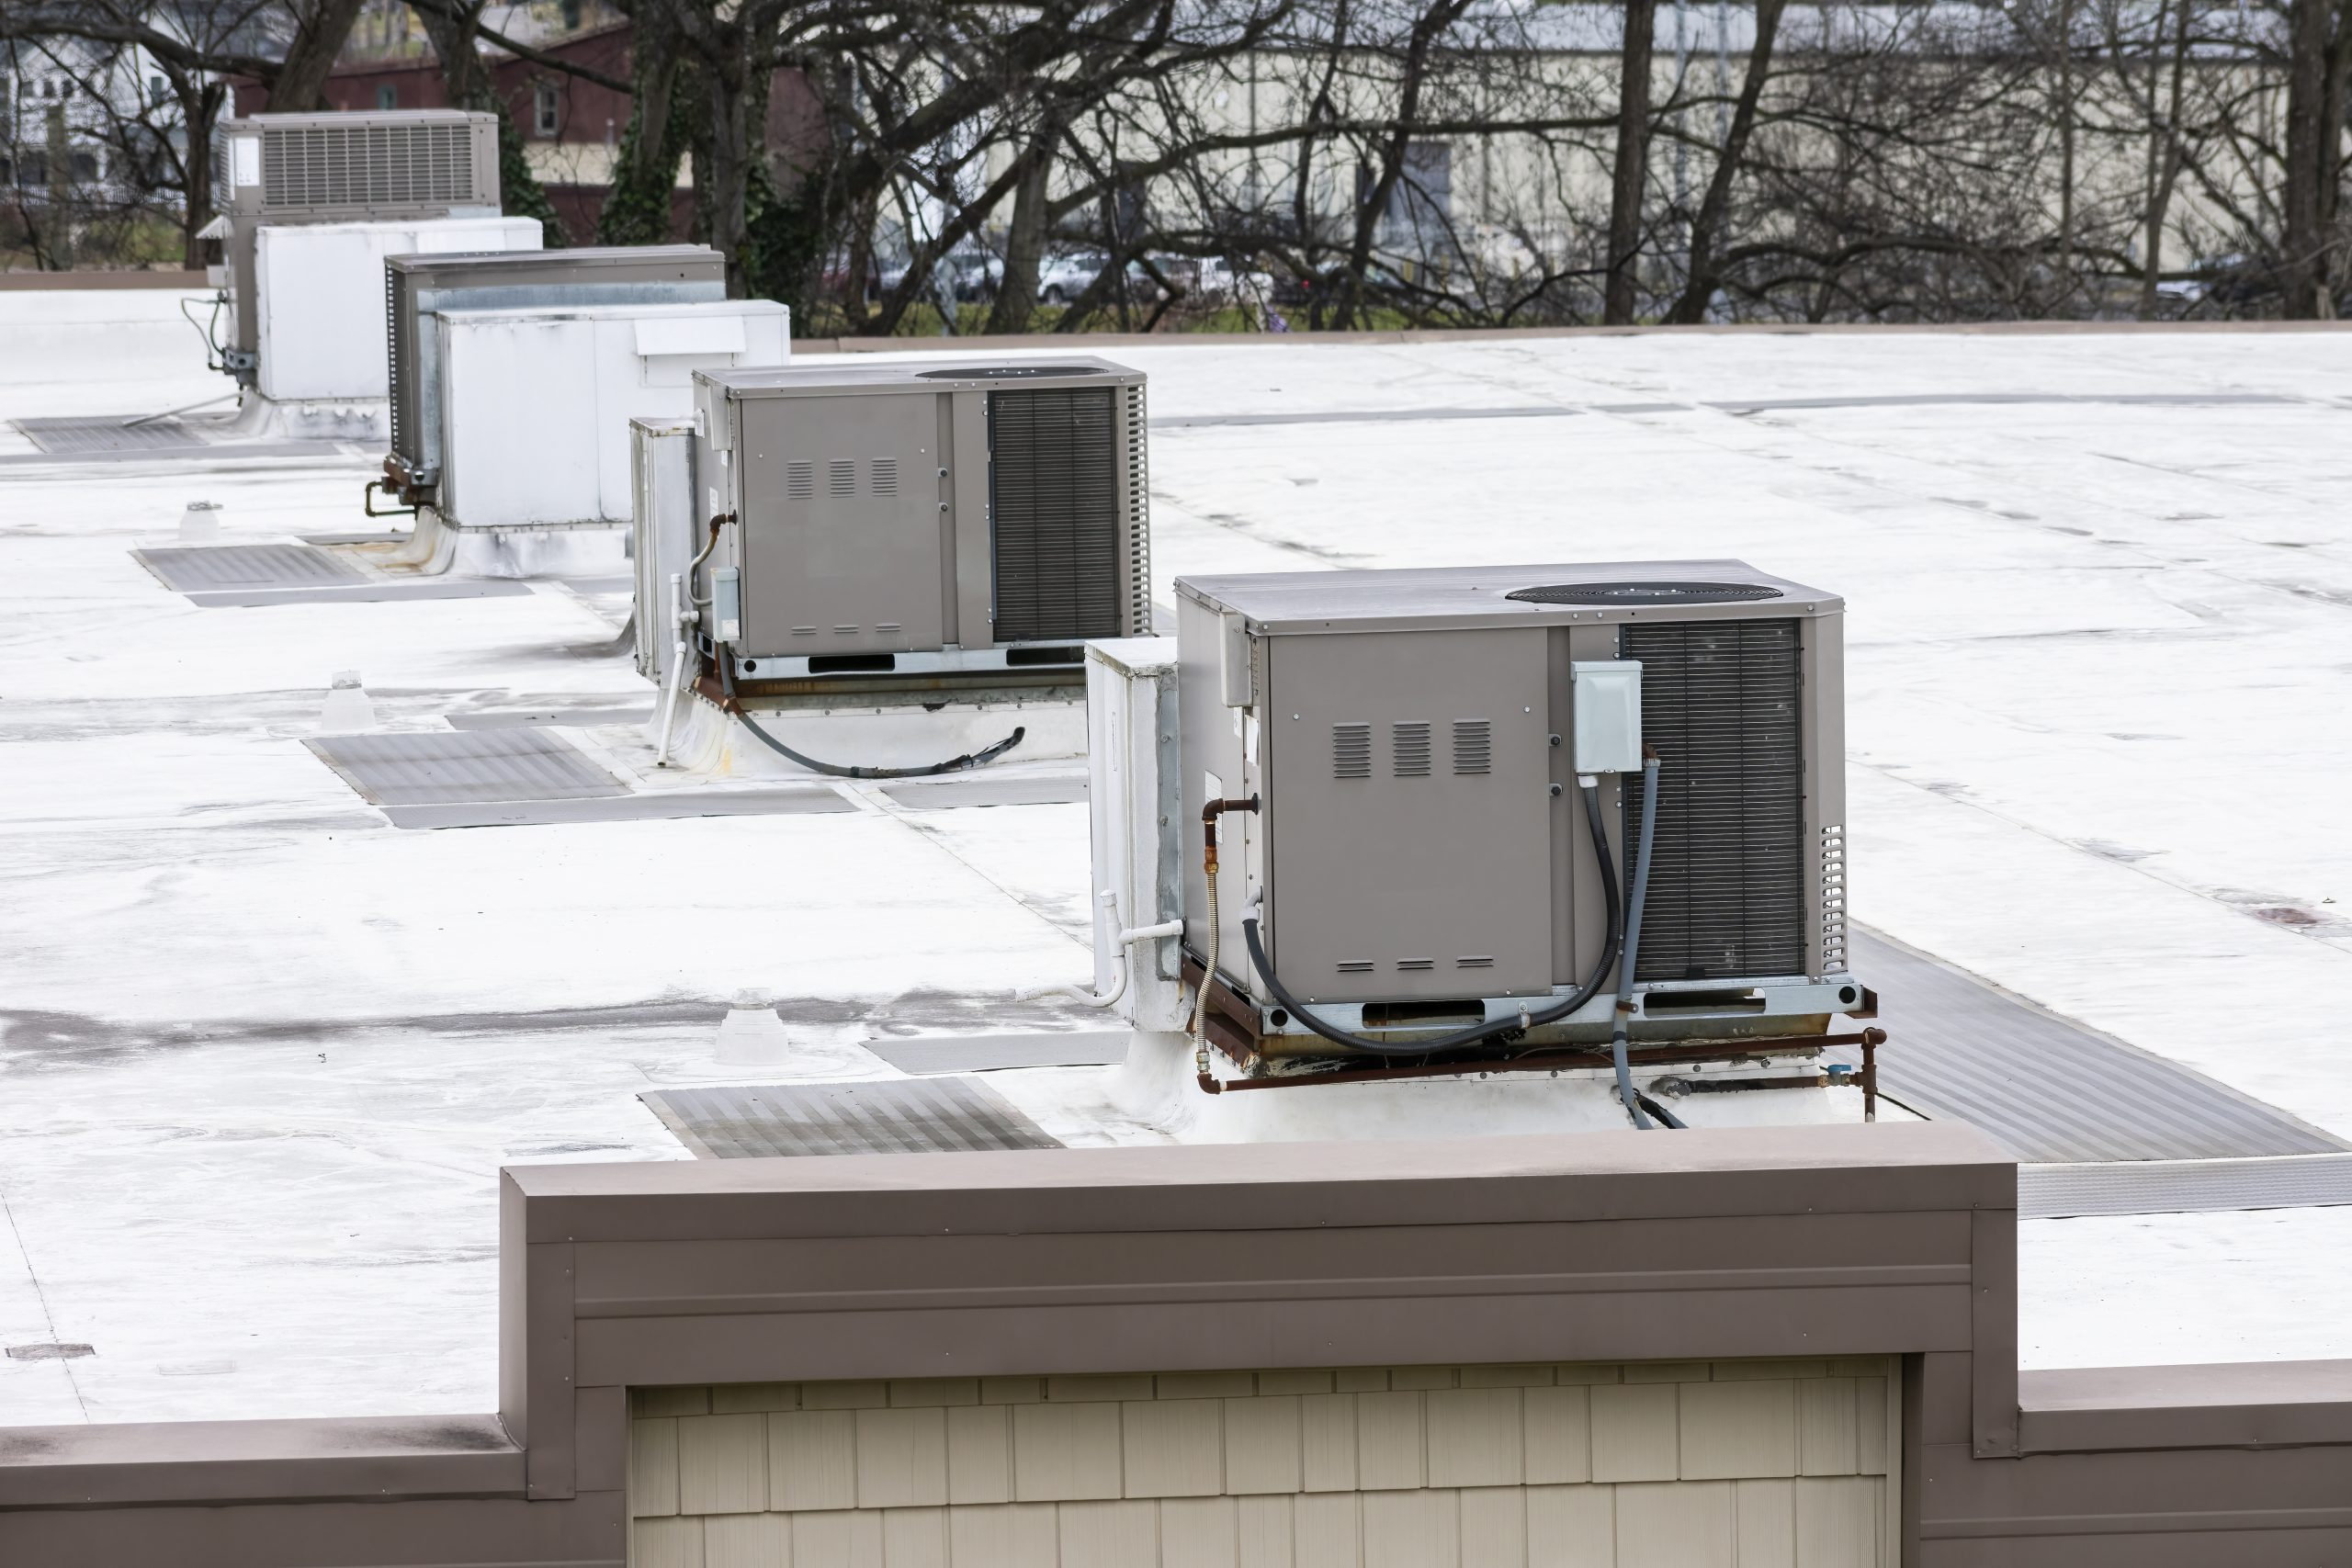 Row of Rooftop commercial Air Condition Units